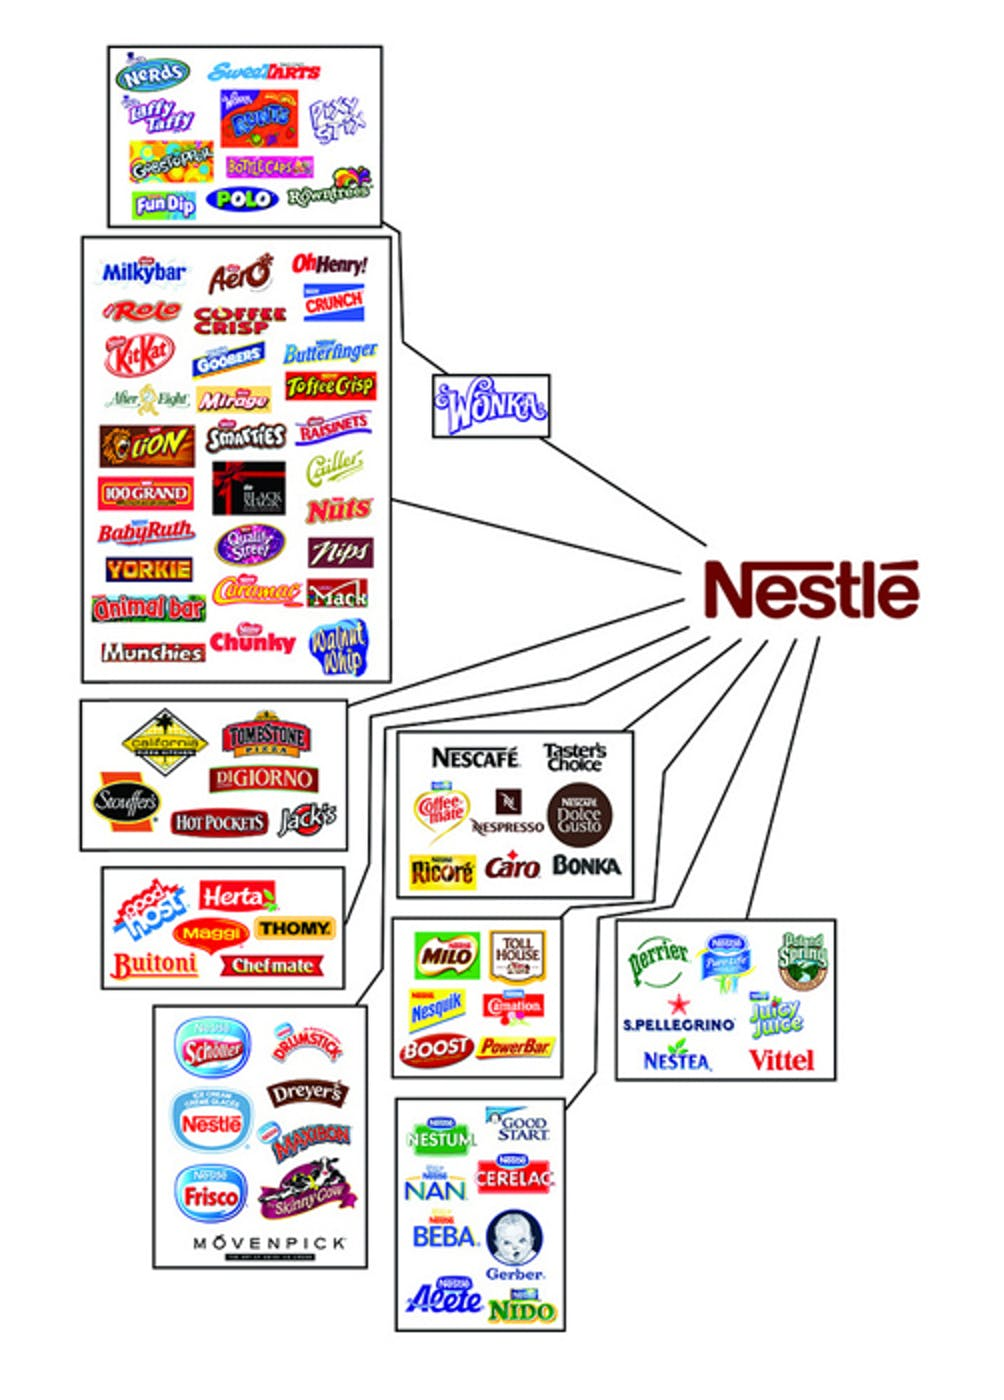 Nestle properties